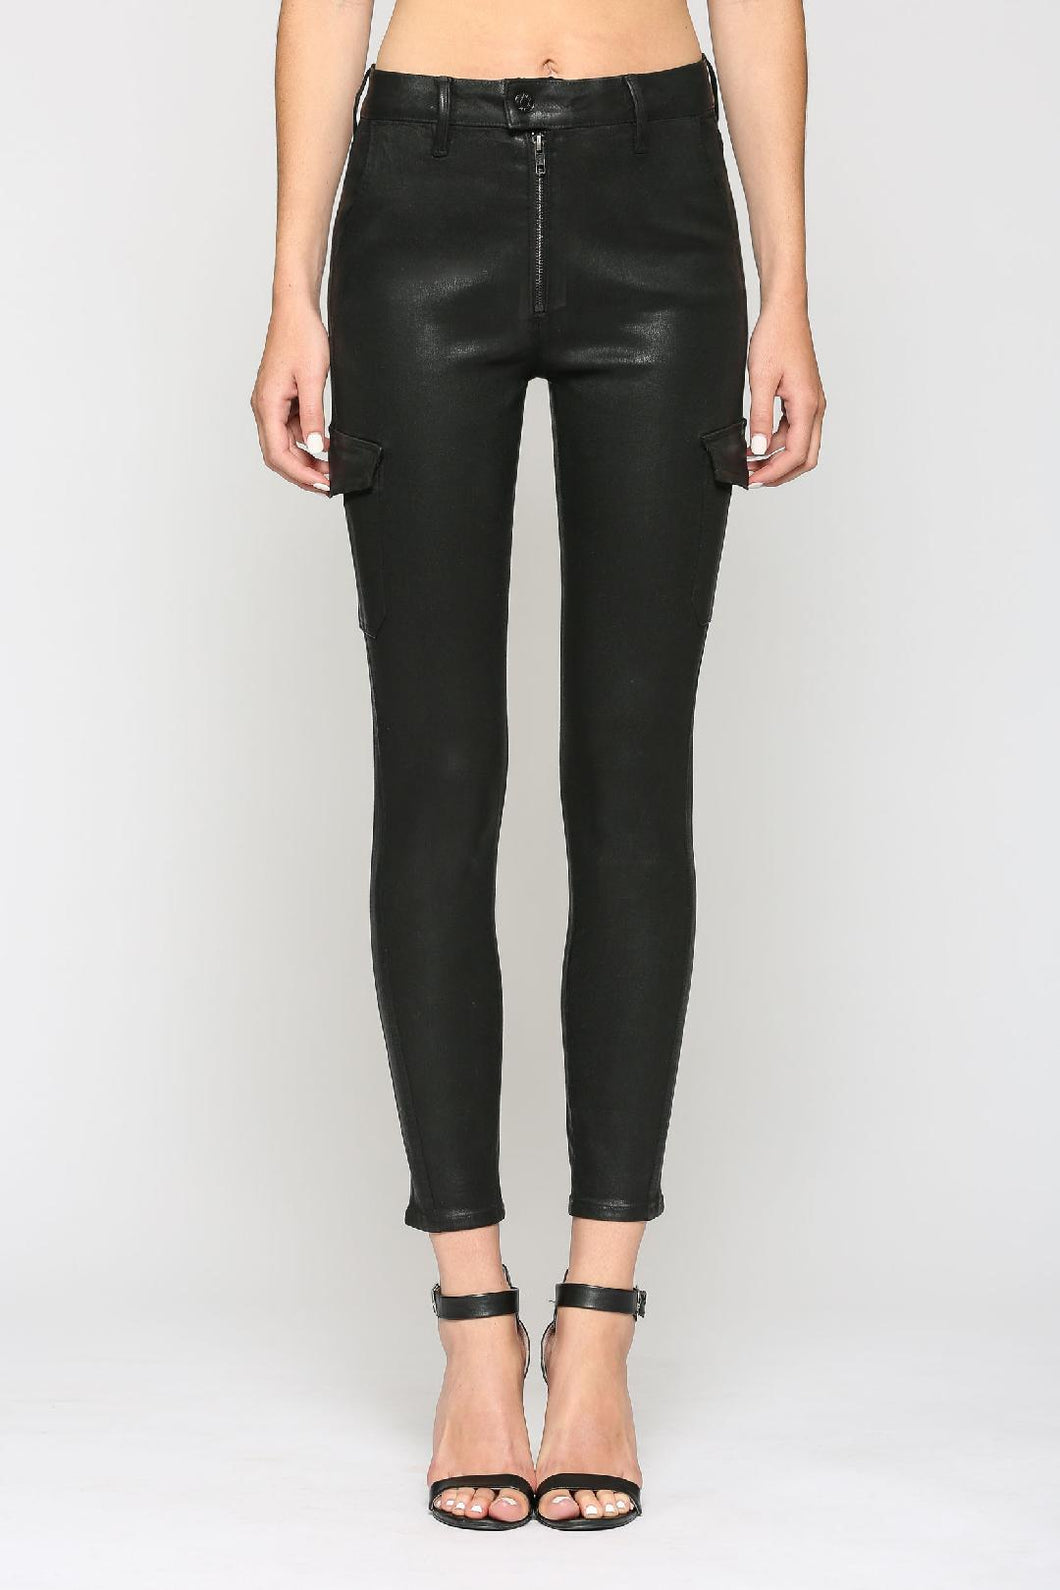 High rise skinny jeans, black